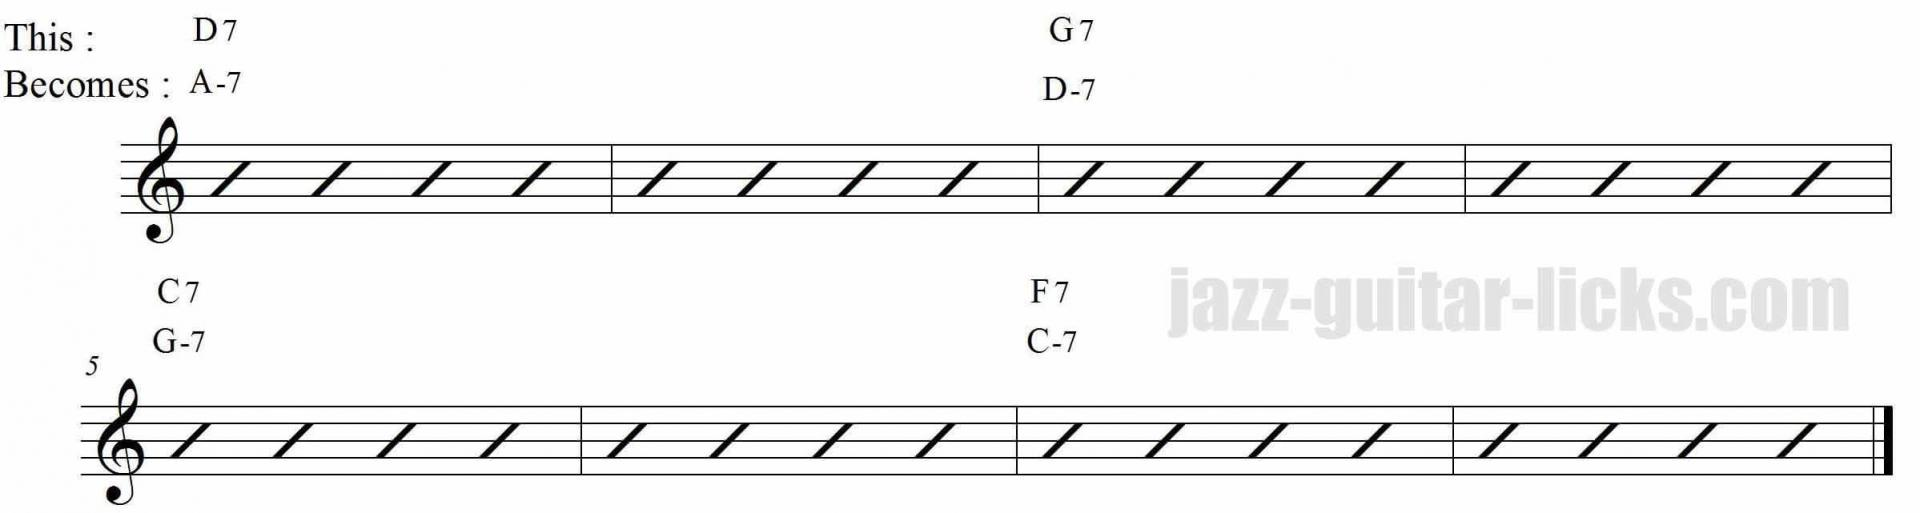 Rhythm changes chord substitutions